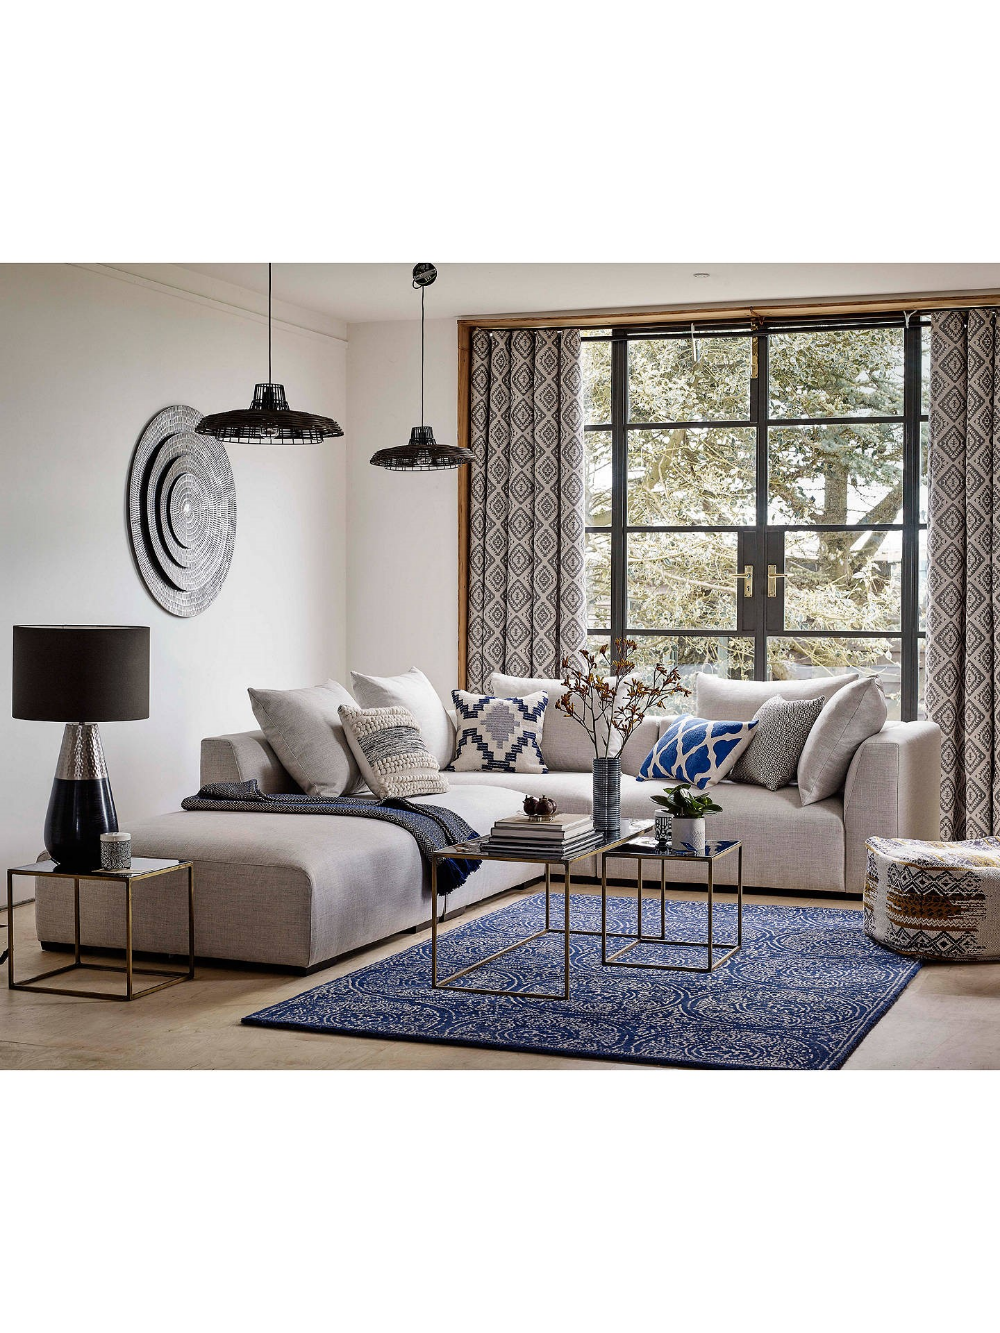 Drawing Room Sofa Designs India: Advantages Of Buying A Sectional Sofa Over Traditional